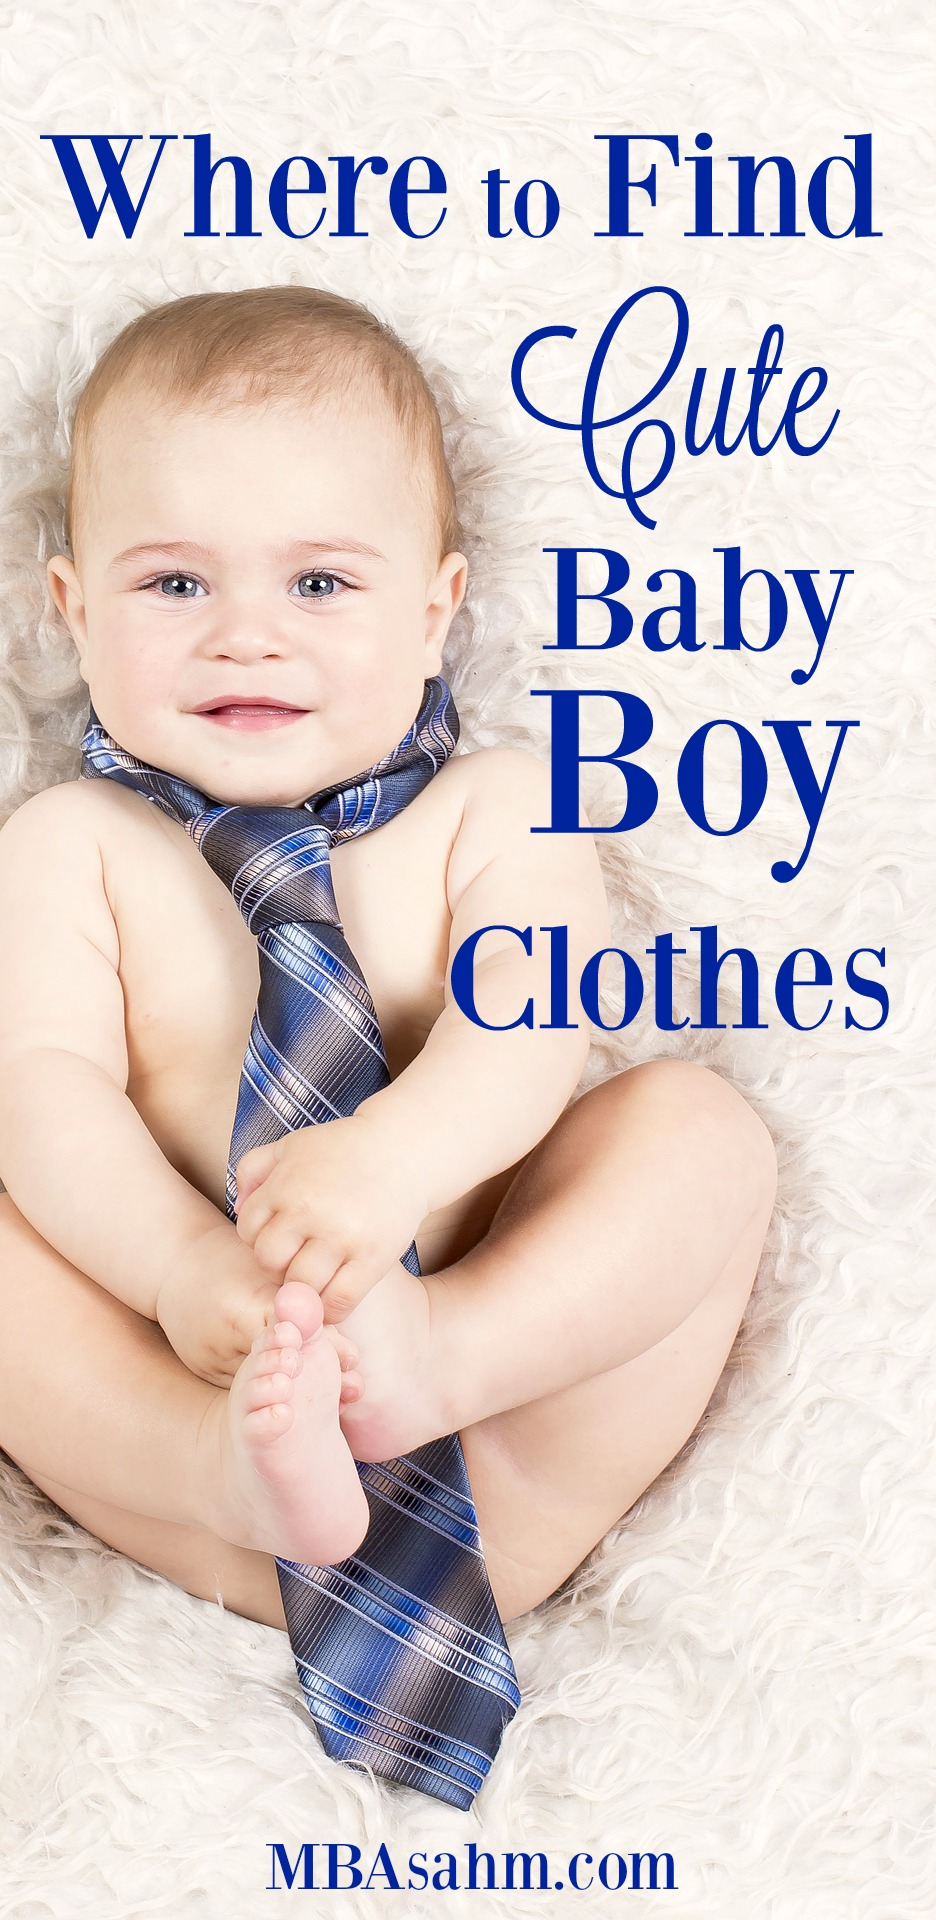 You searched for: cute baby clothes! Etsy is the home to thousands of handmade, vintage, and one-of-a-kind products and gifts related to your search. No matter what you're looking for or where you are in the world, our global marketplace of sellers can help you find unique and .